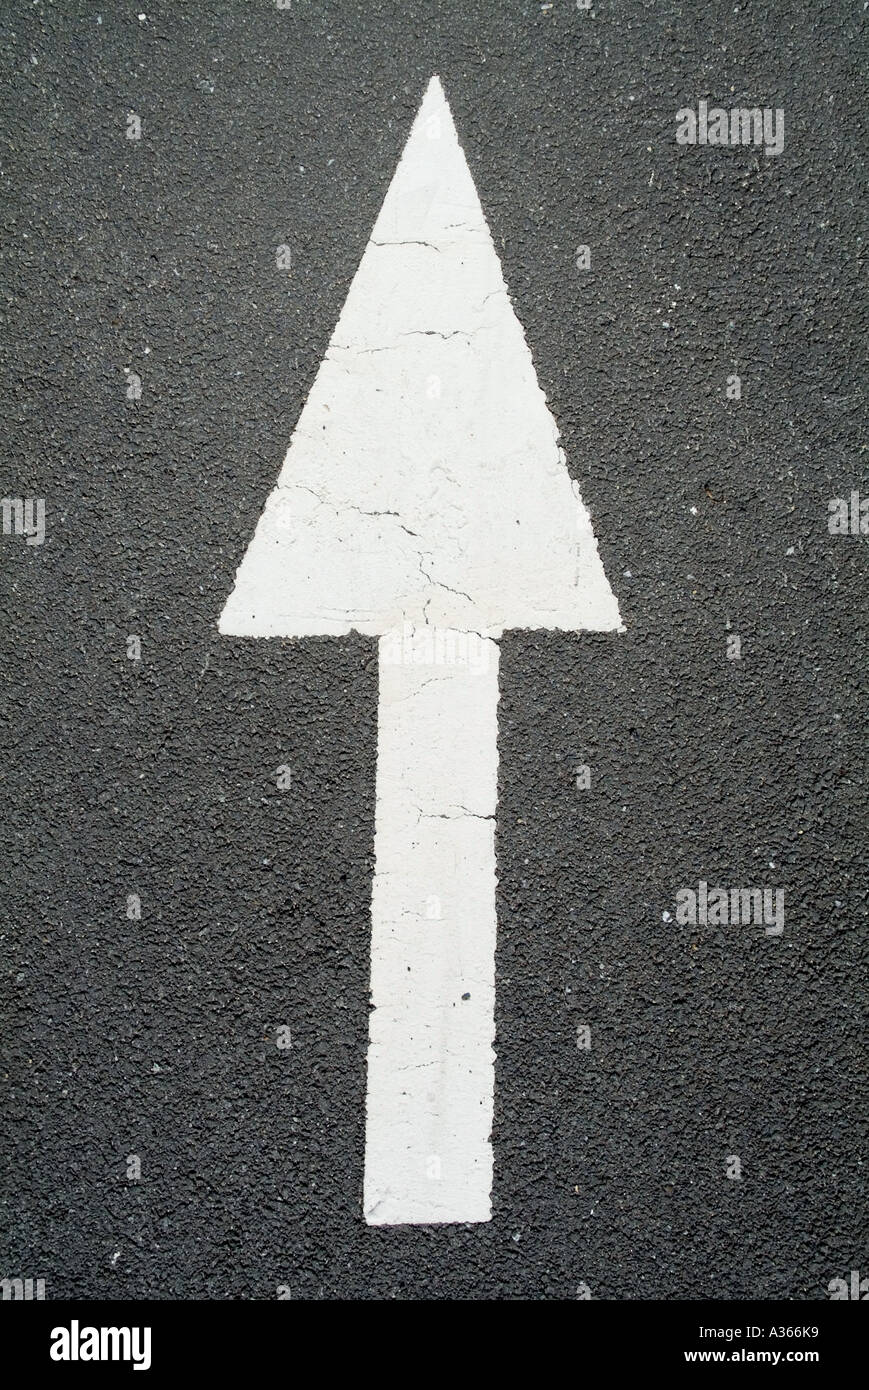 Arrow sign on the road. - Stock Image